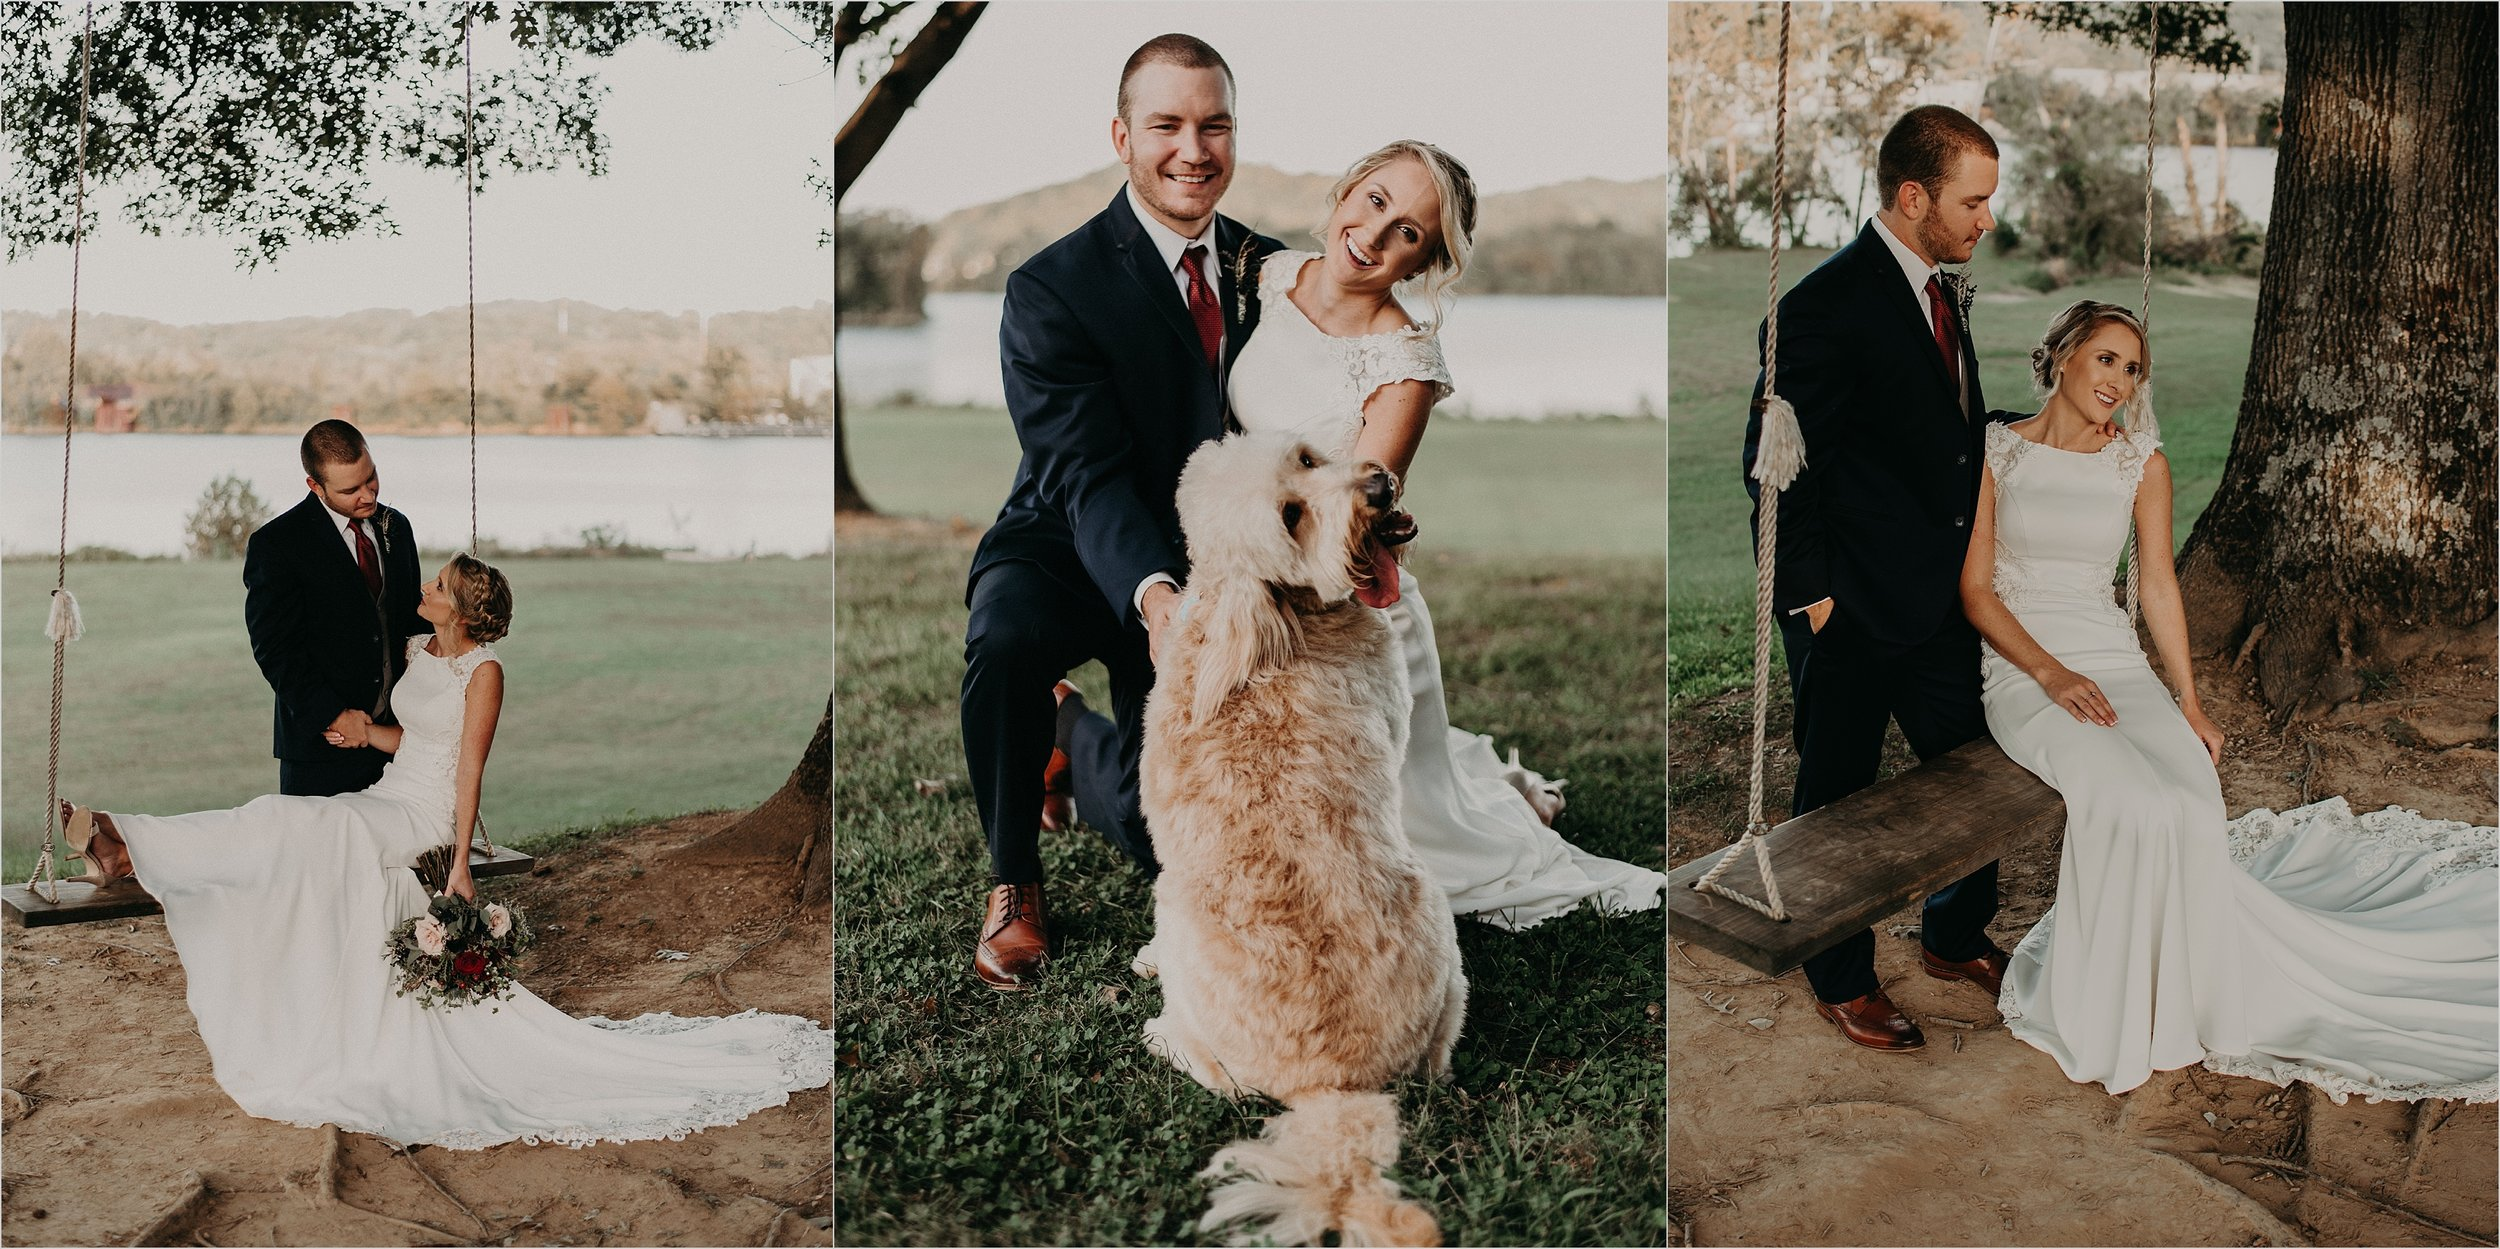 Bride and groom swing together next to Tennessee River